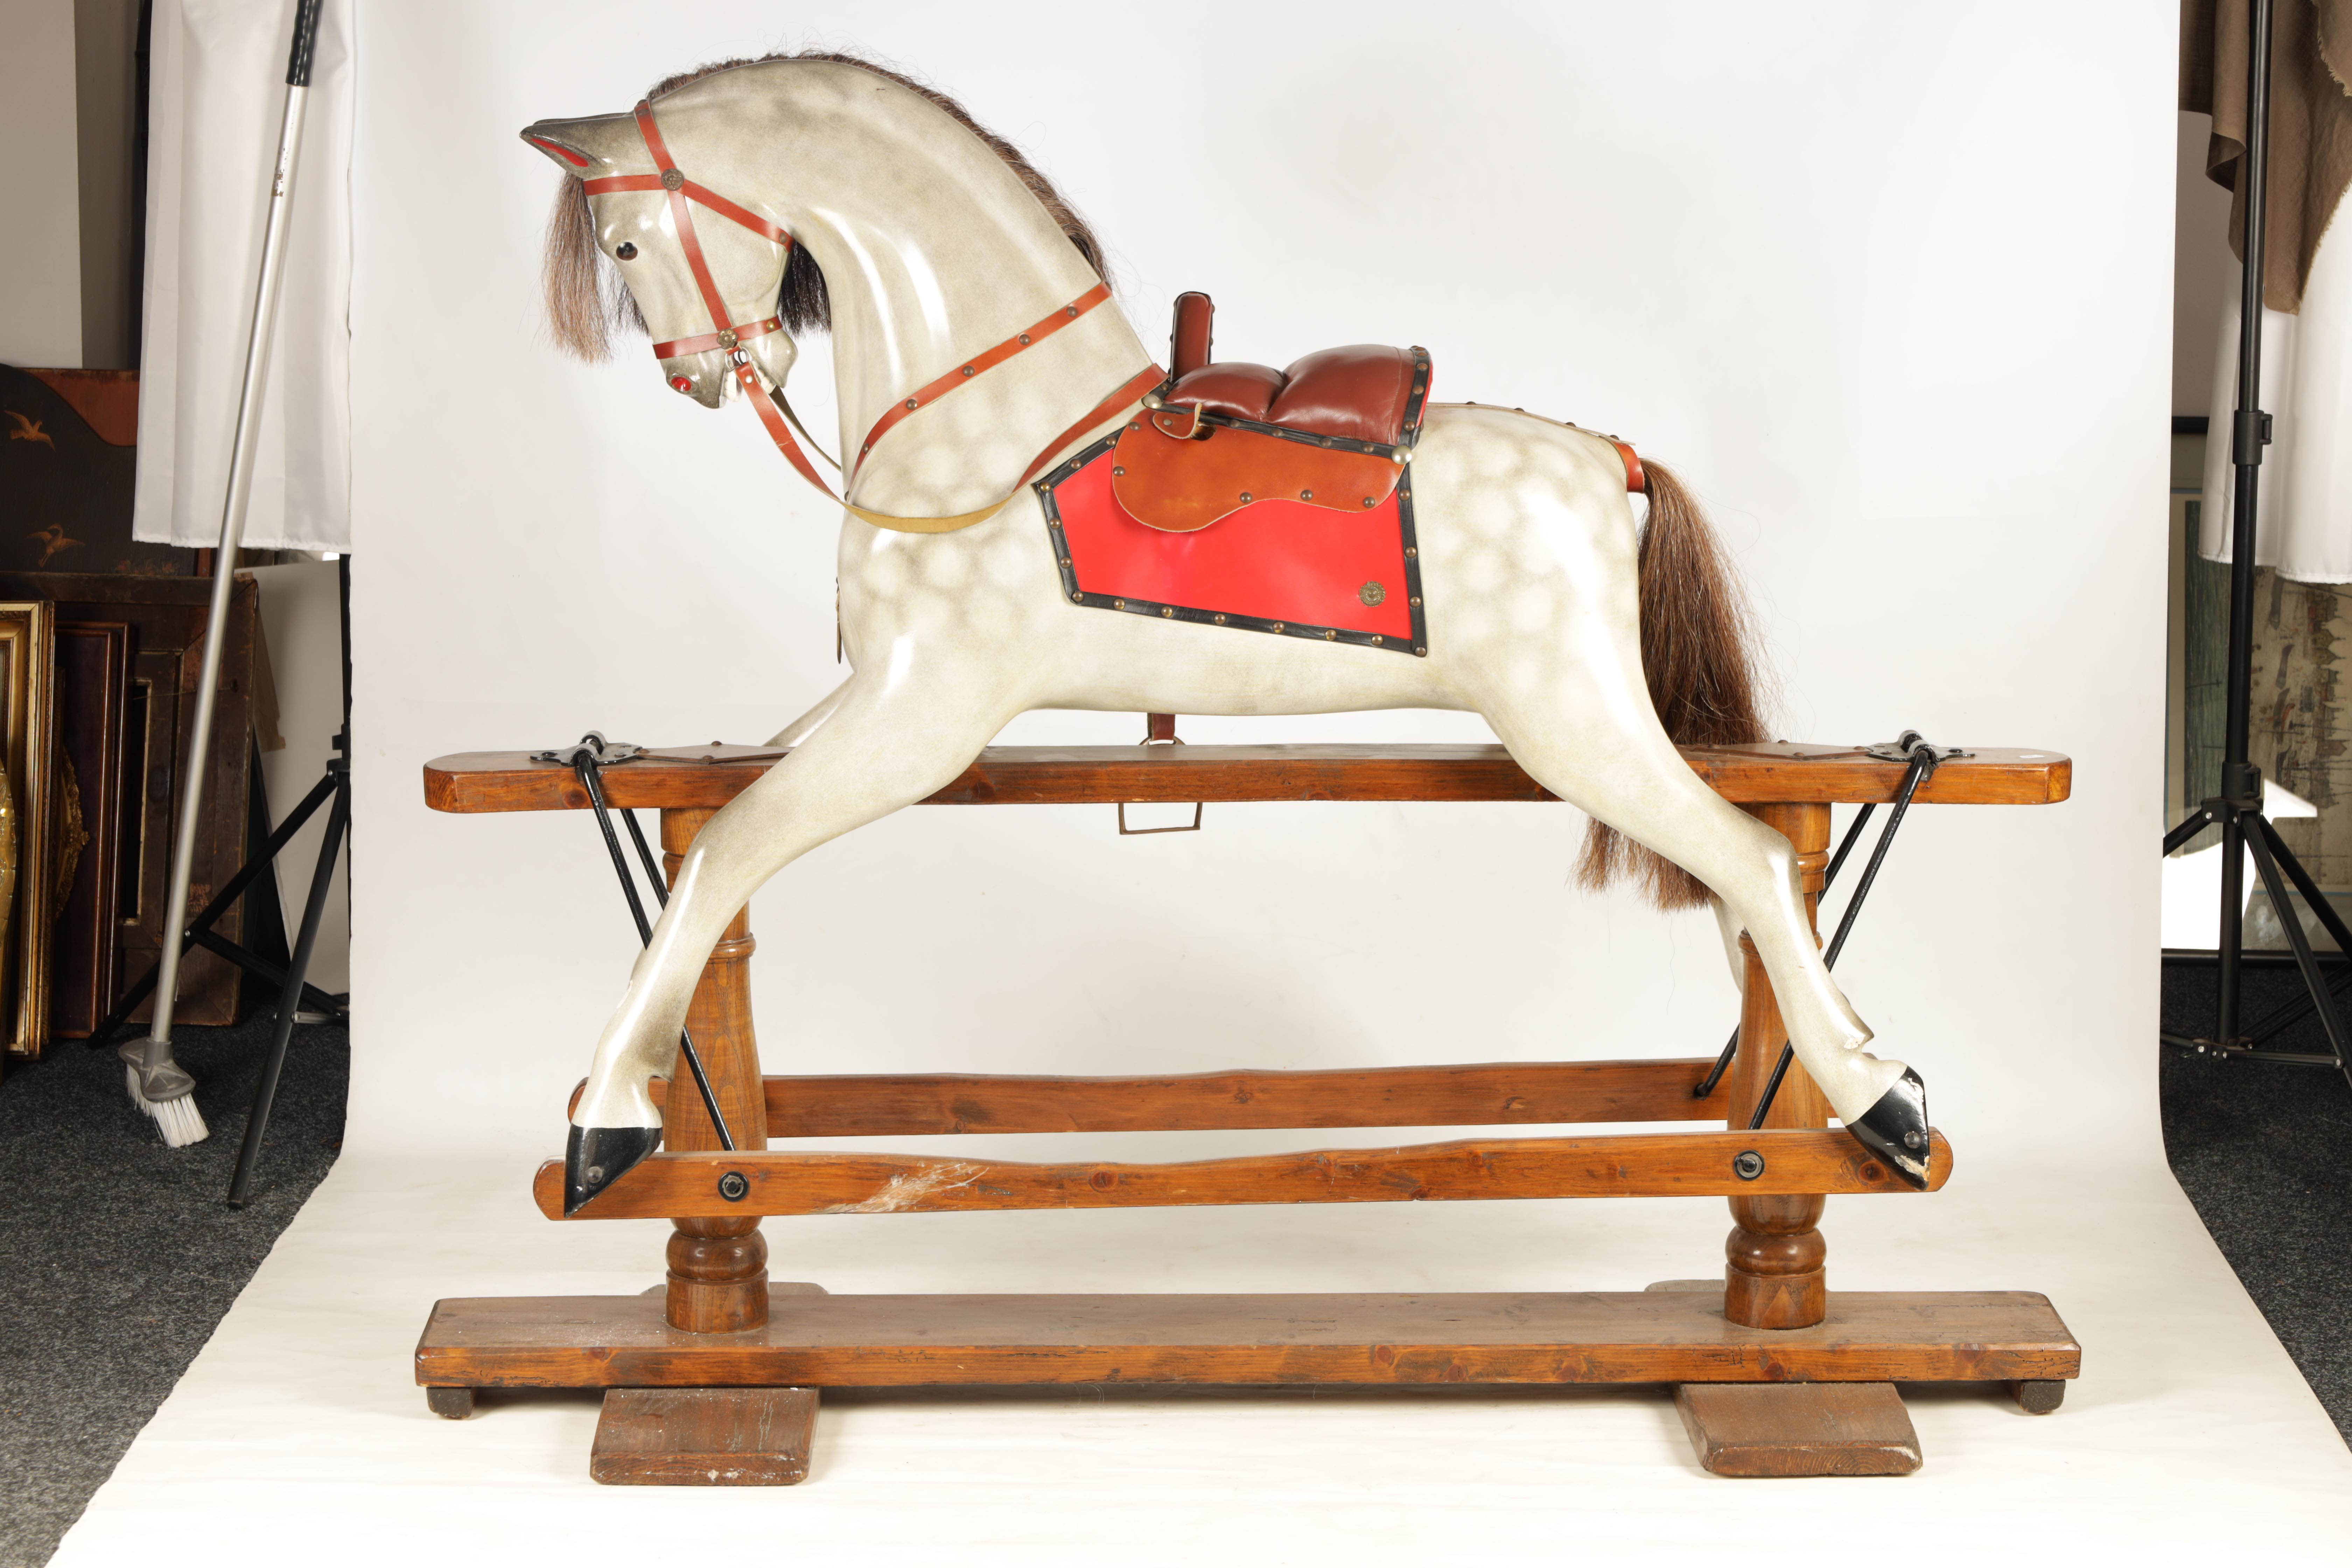 A LARGE 20TH CENTURY DAPPLE GREY PAINTED WOOD ROCKING HORSE with leather seat and bridle 157cm - Image 7 of 8